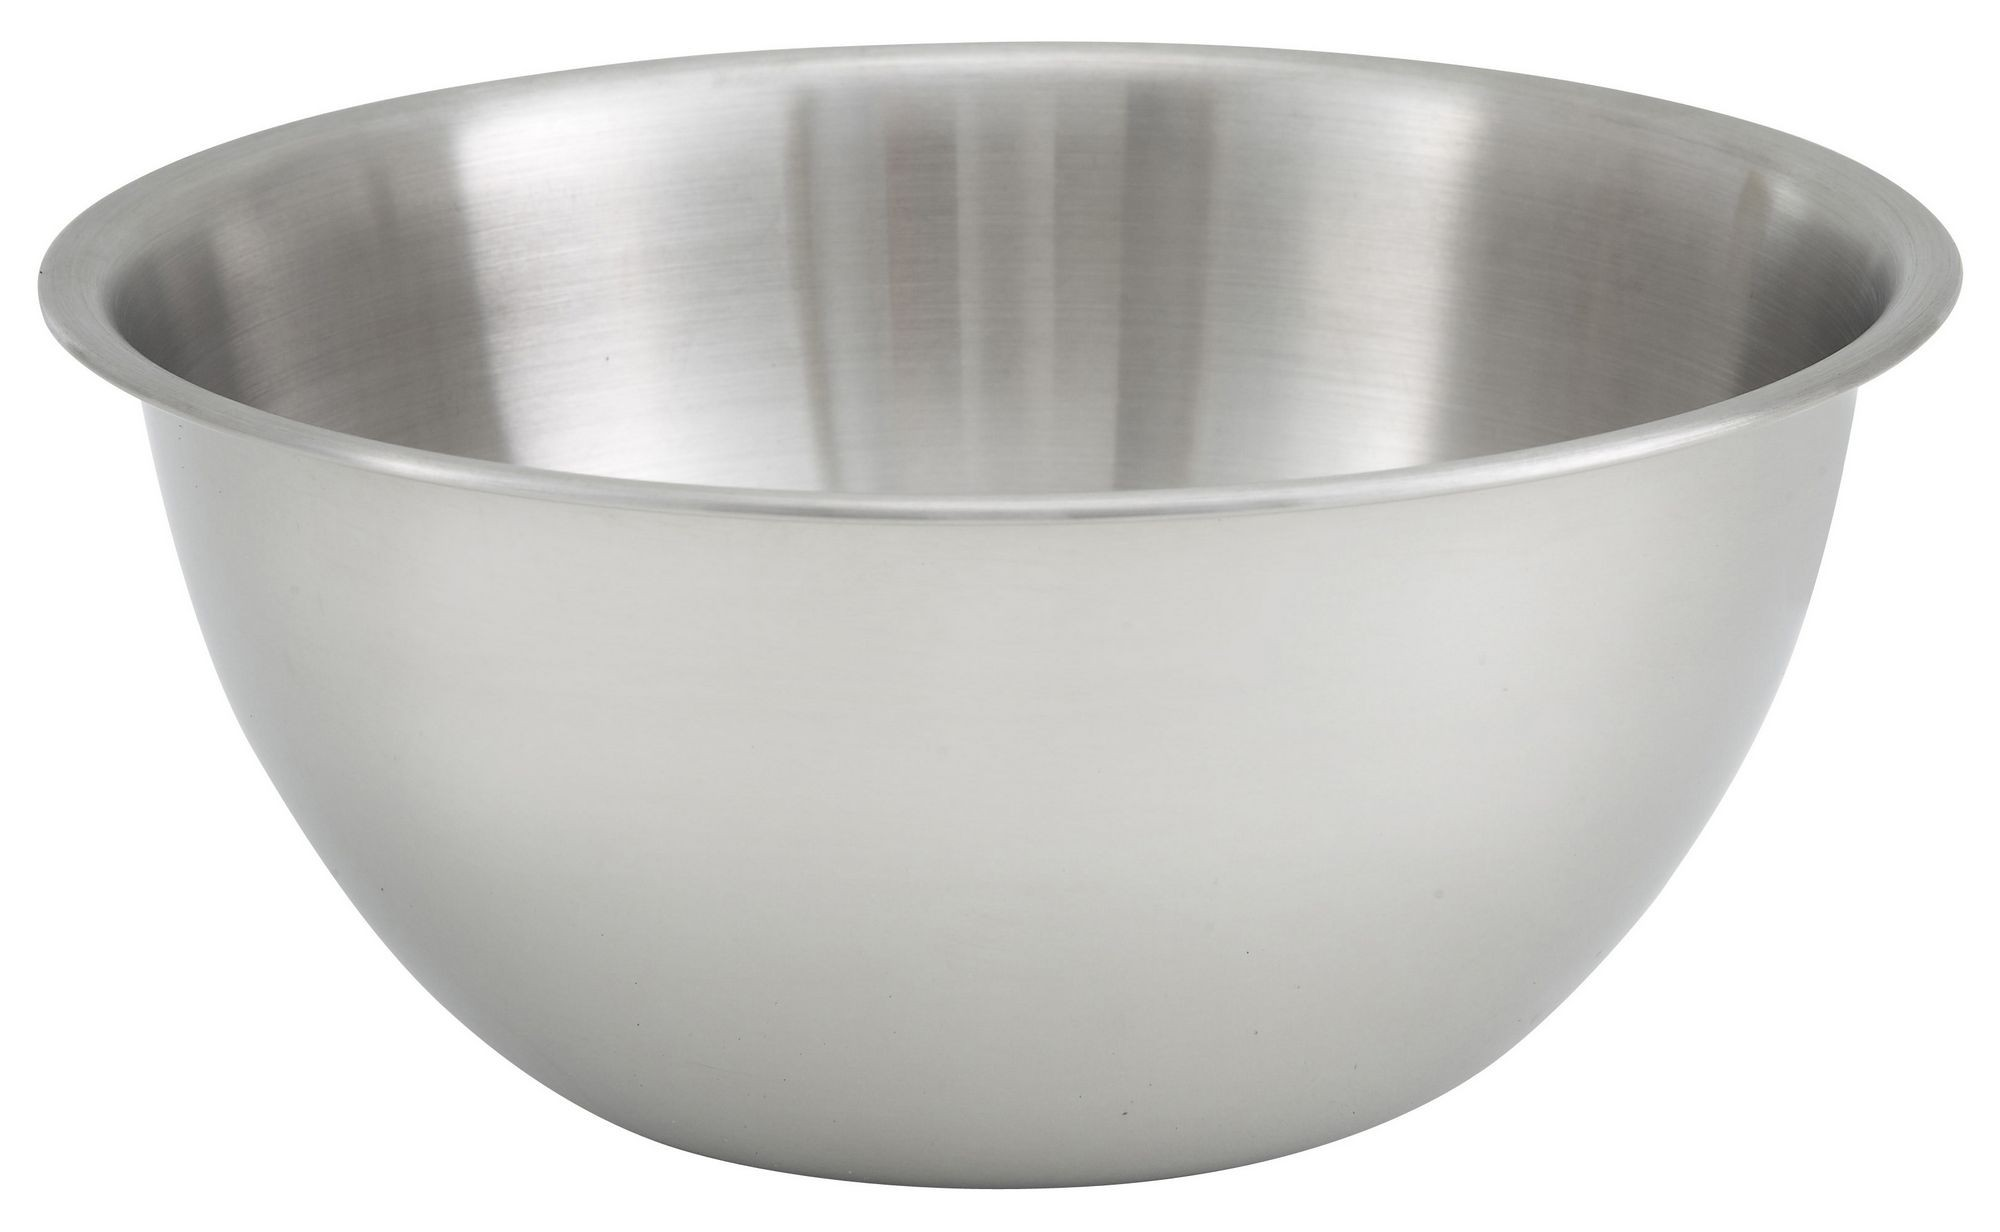 Heavy Duty Stainless Steel 5 Qt. Mixing Bowl - 10 X 5